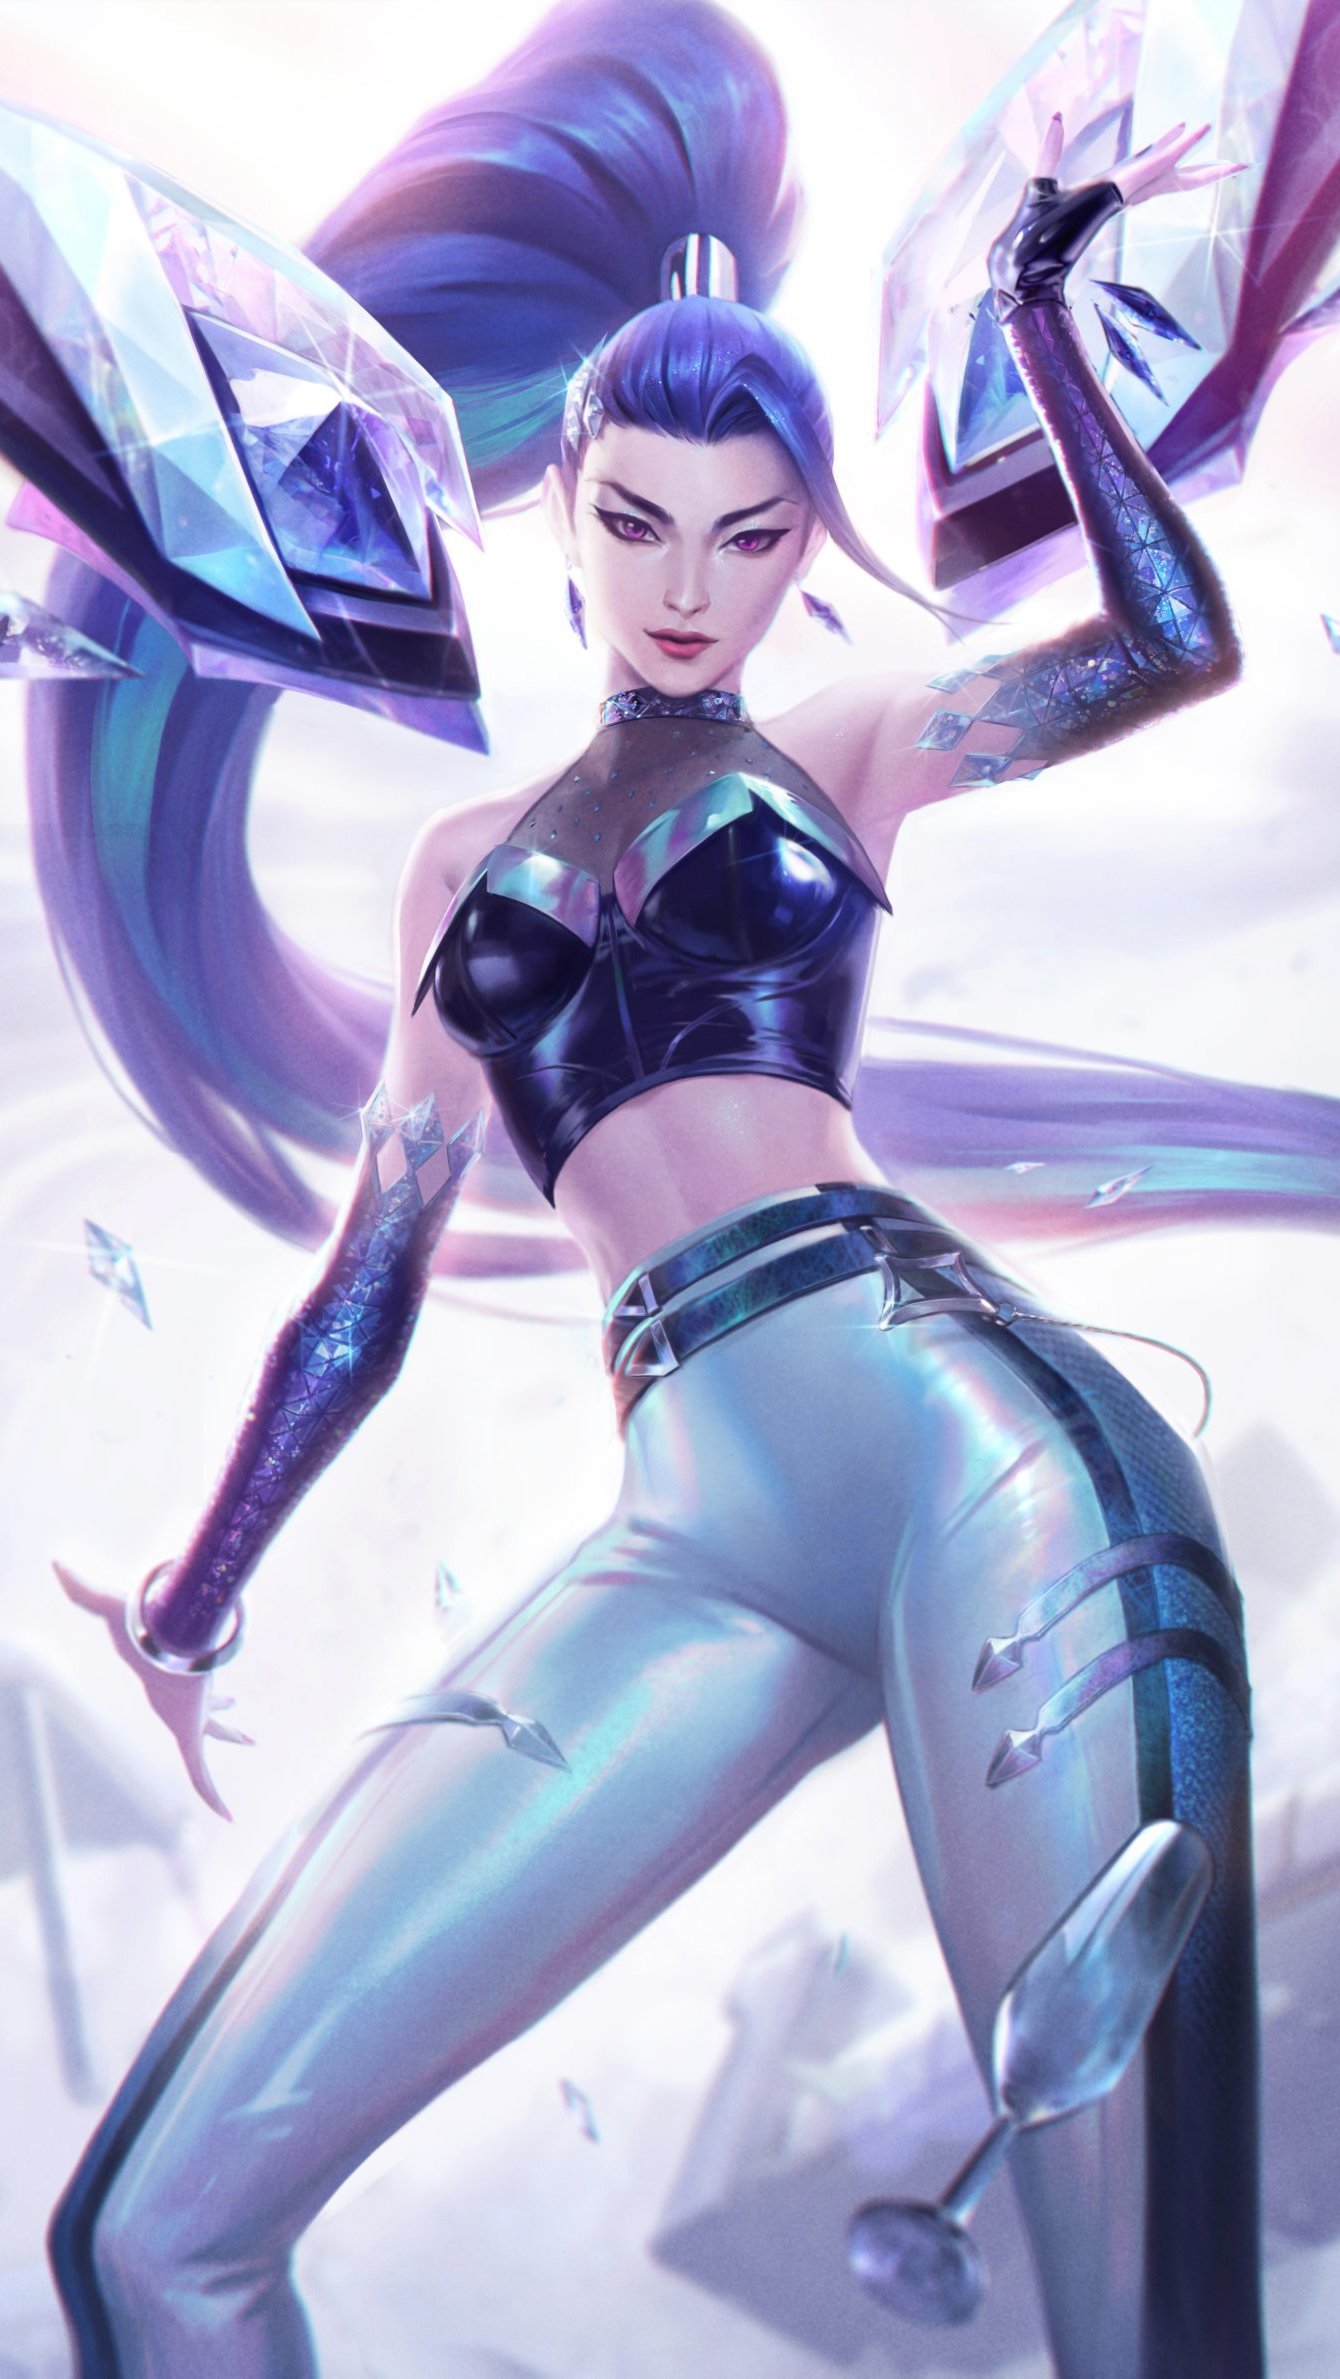 Fondos de pantalla Kaisa de League of Legends Vertical